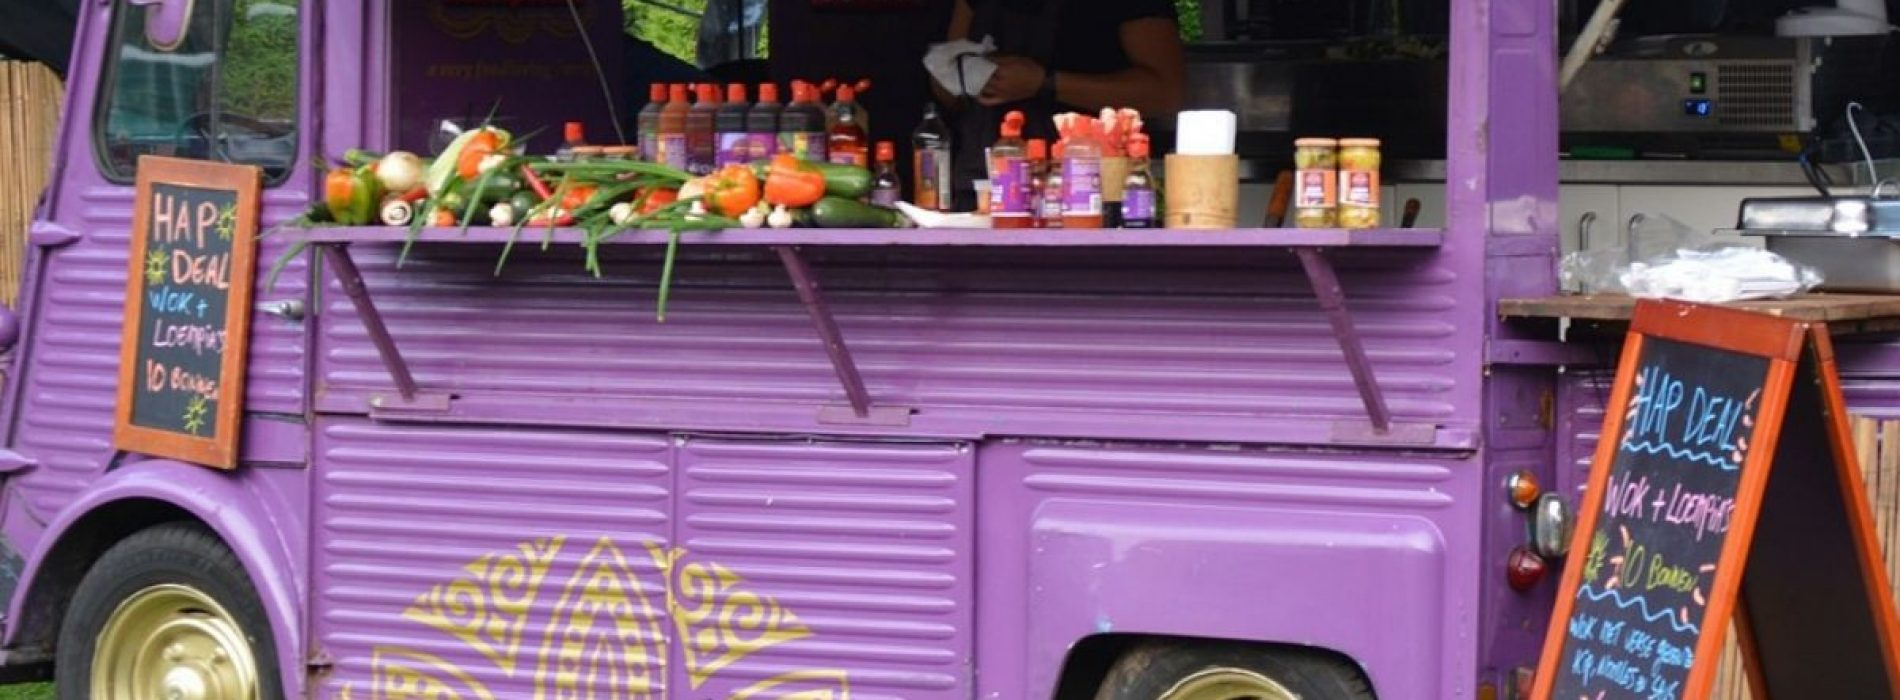 4 Steps to Grow Business With Food Trucks